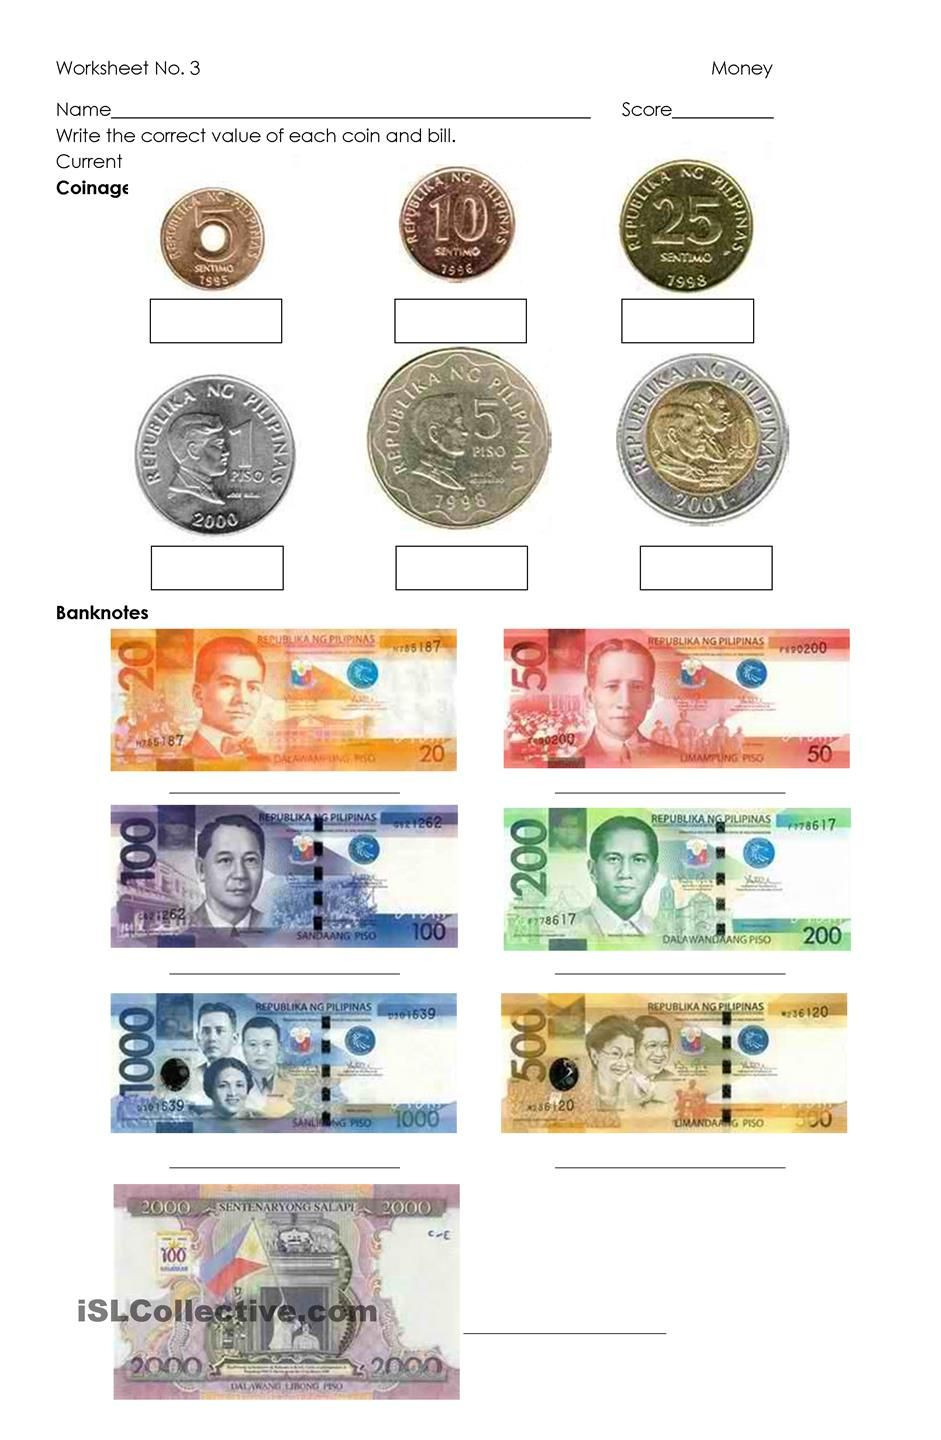 Money Worksheets for 3rd Grade Money Philippine Coins and Bills